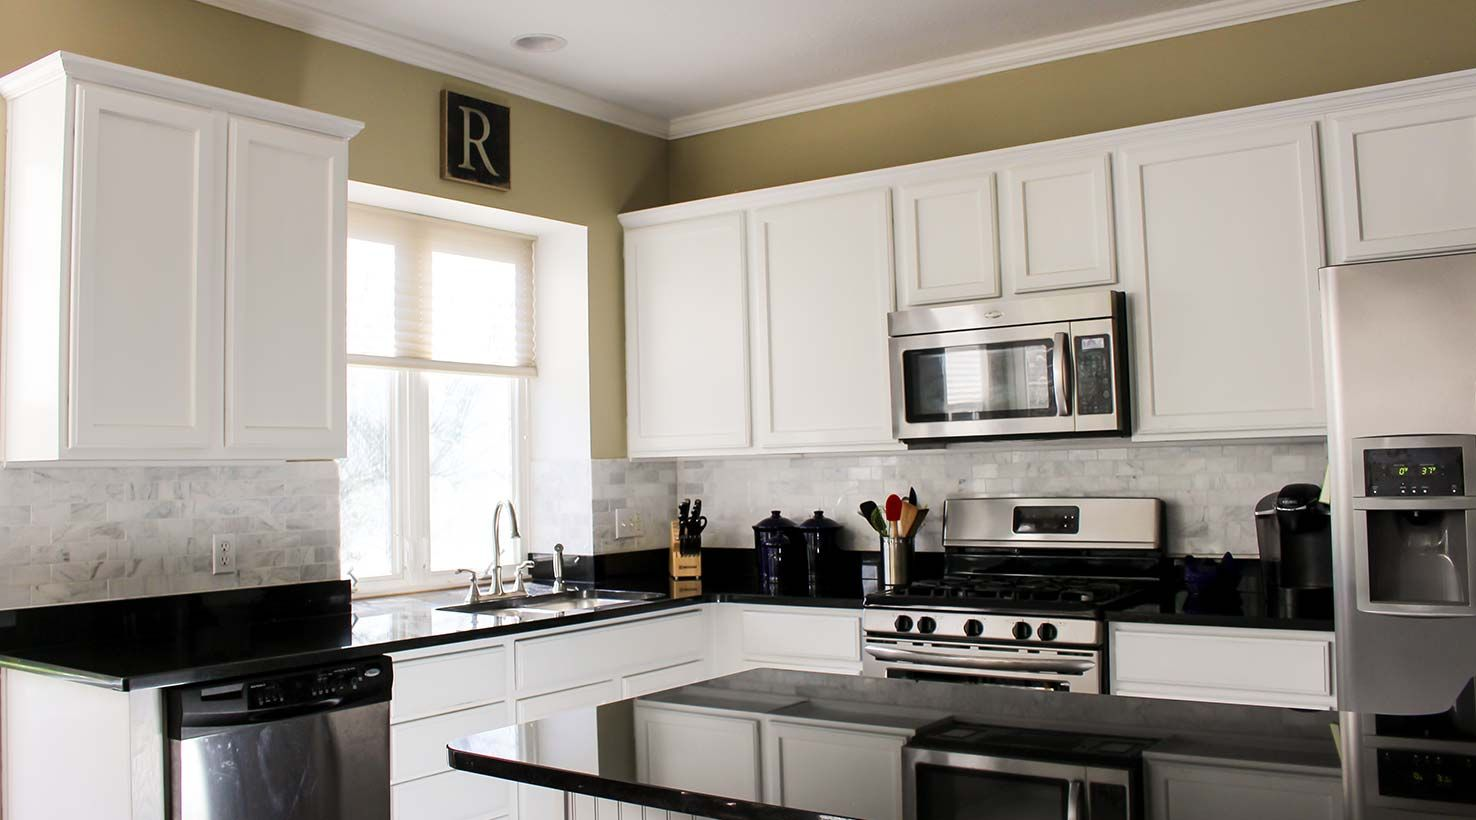 The Kitchen Color Inspiration Gallery from Sherwin